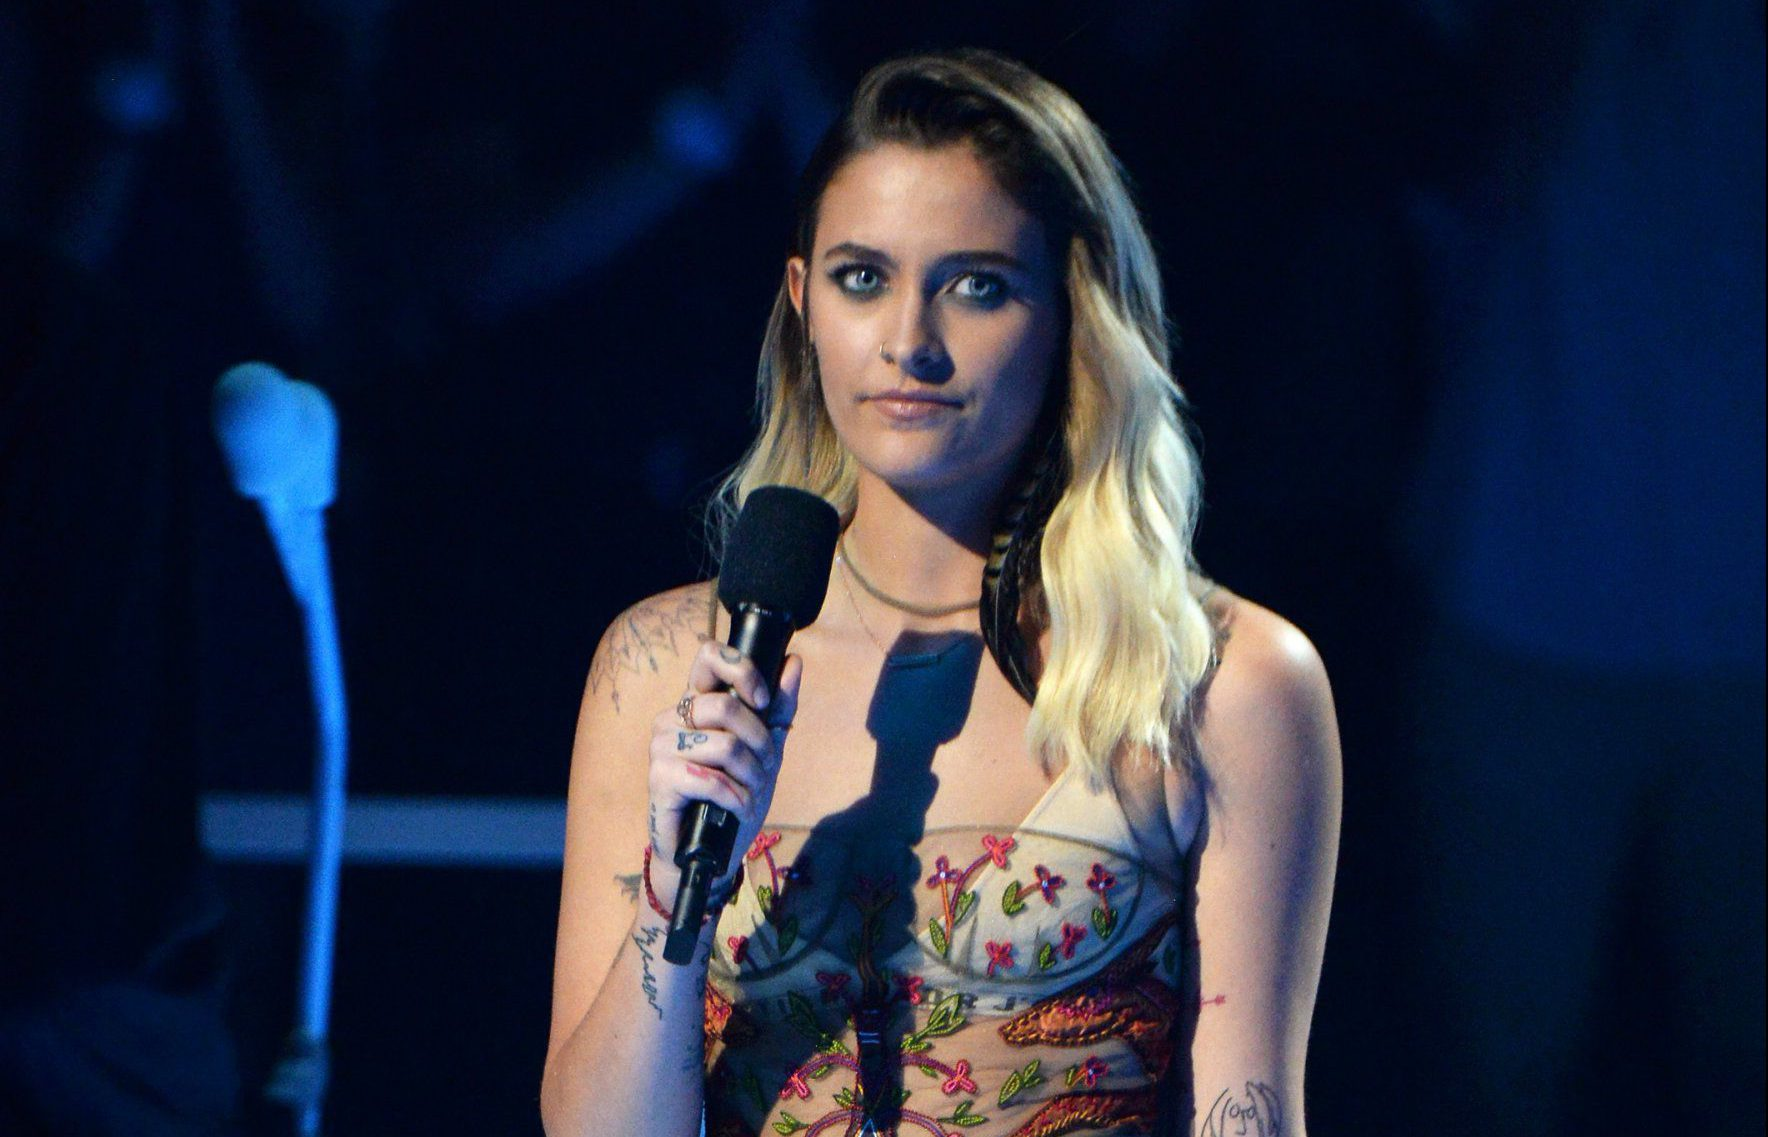 Paris Jackson urges fans to fight against 'Nazi, white supremacist jerks' after Charlottesville clashes in MTV VMAs speech